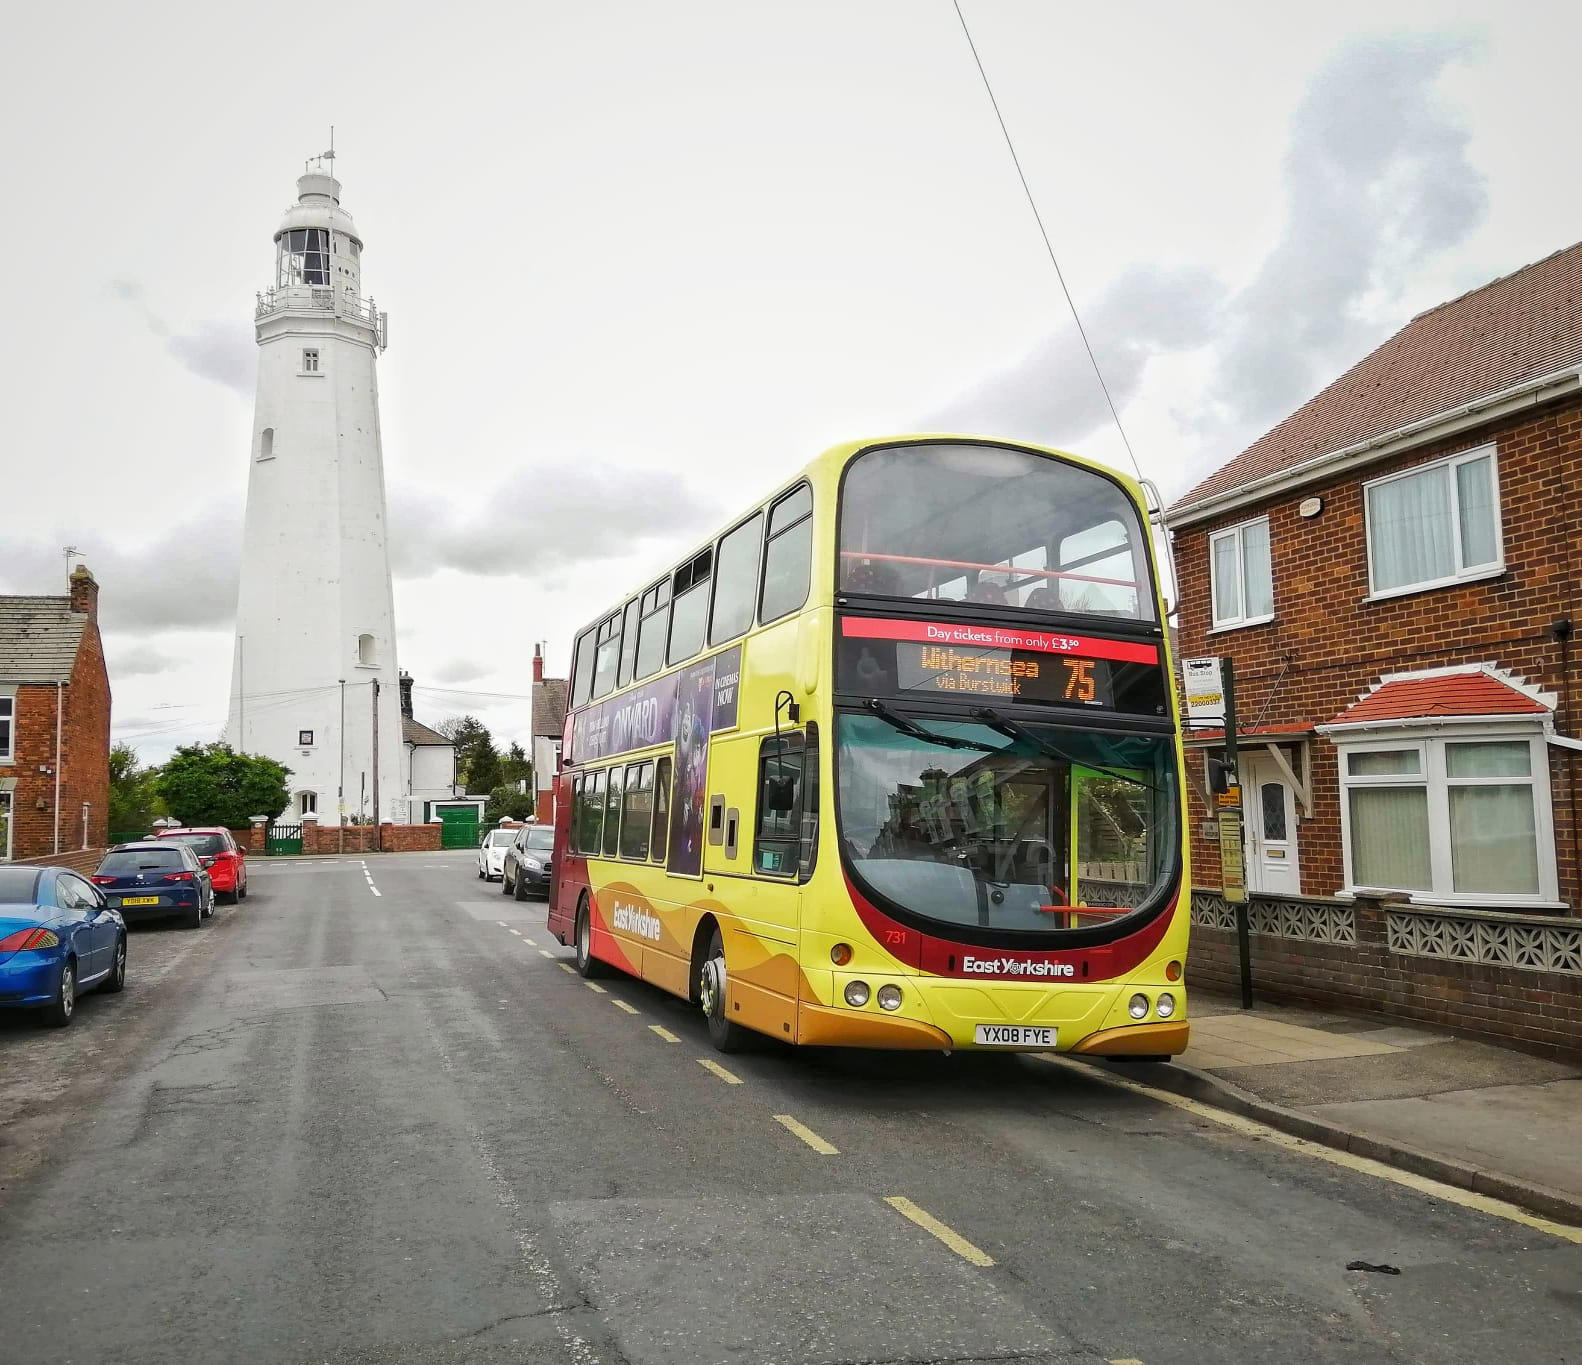 An East Yorkshire bus outside Withernsea Lighthouse